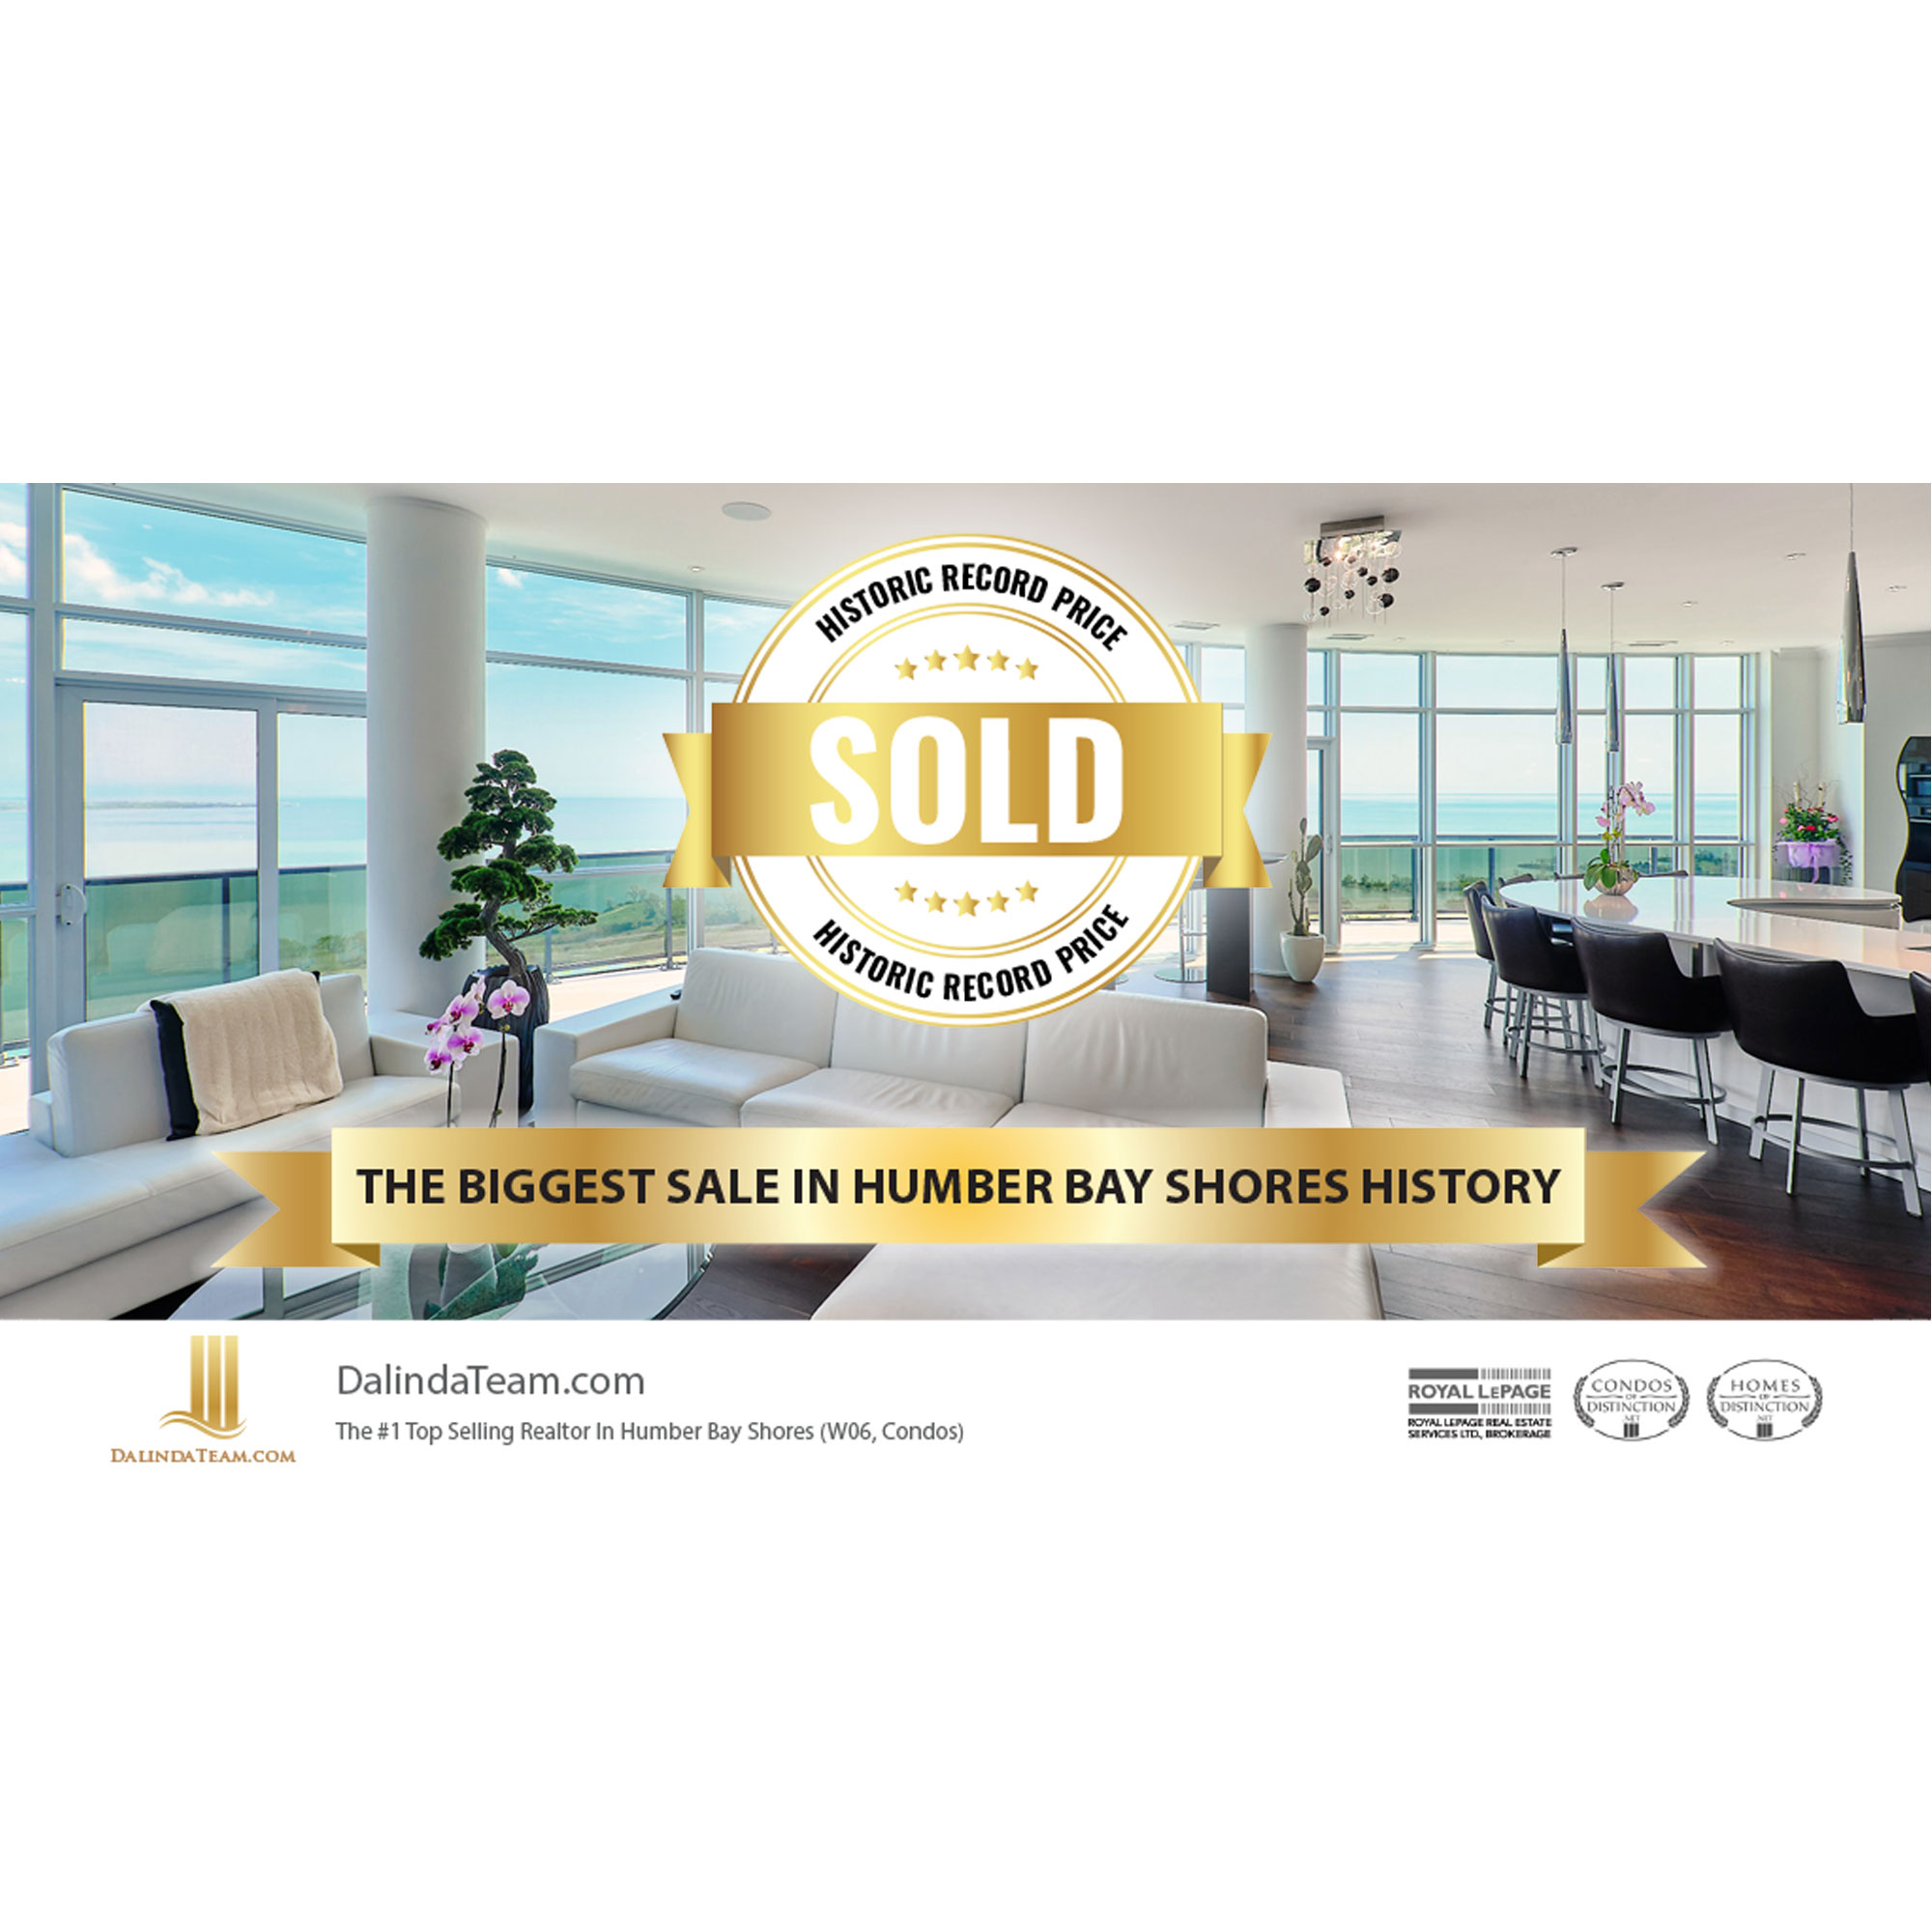 Historic Record Price Humber Bay Shores